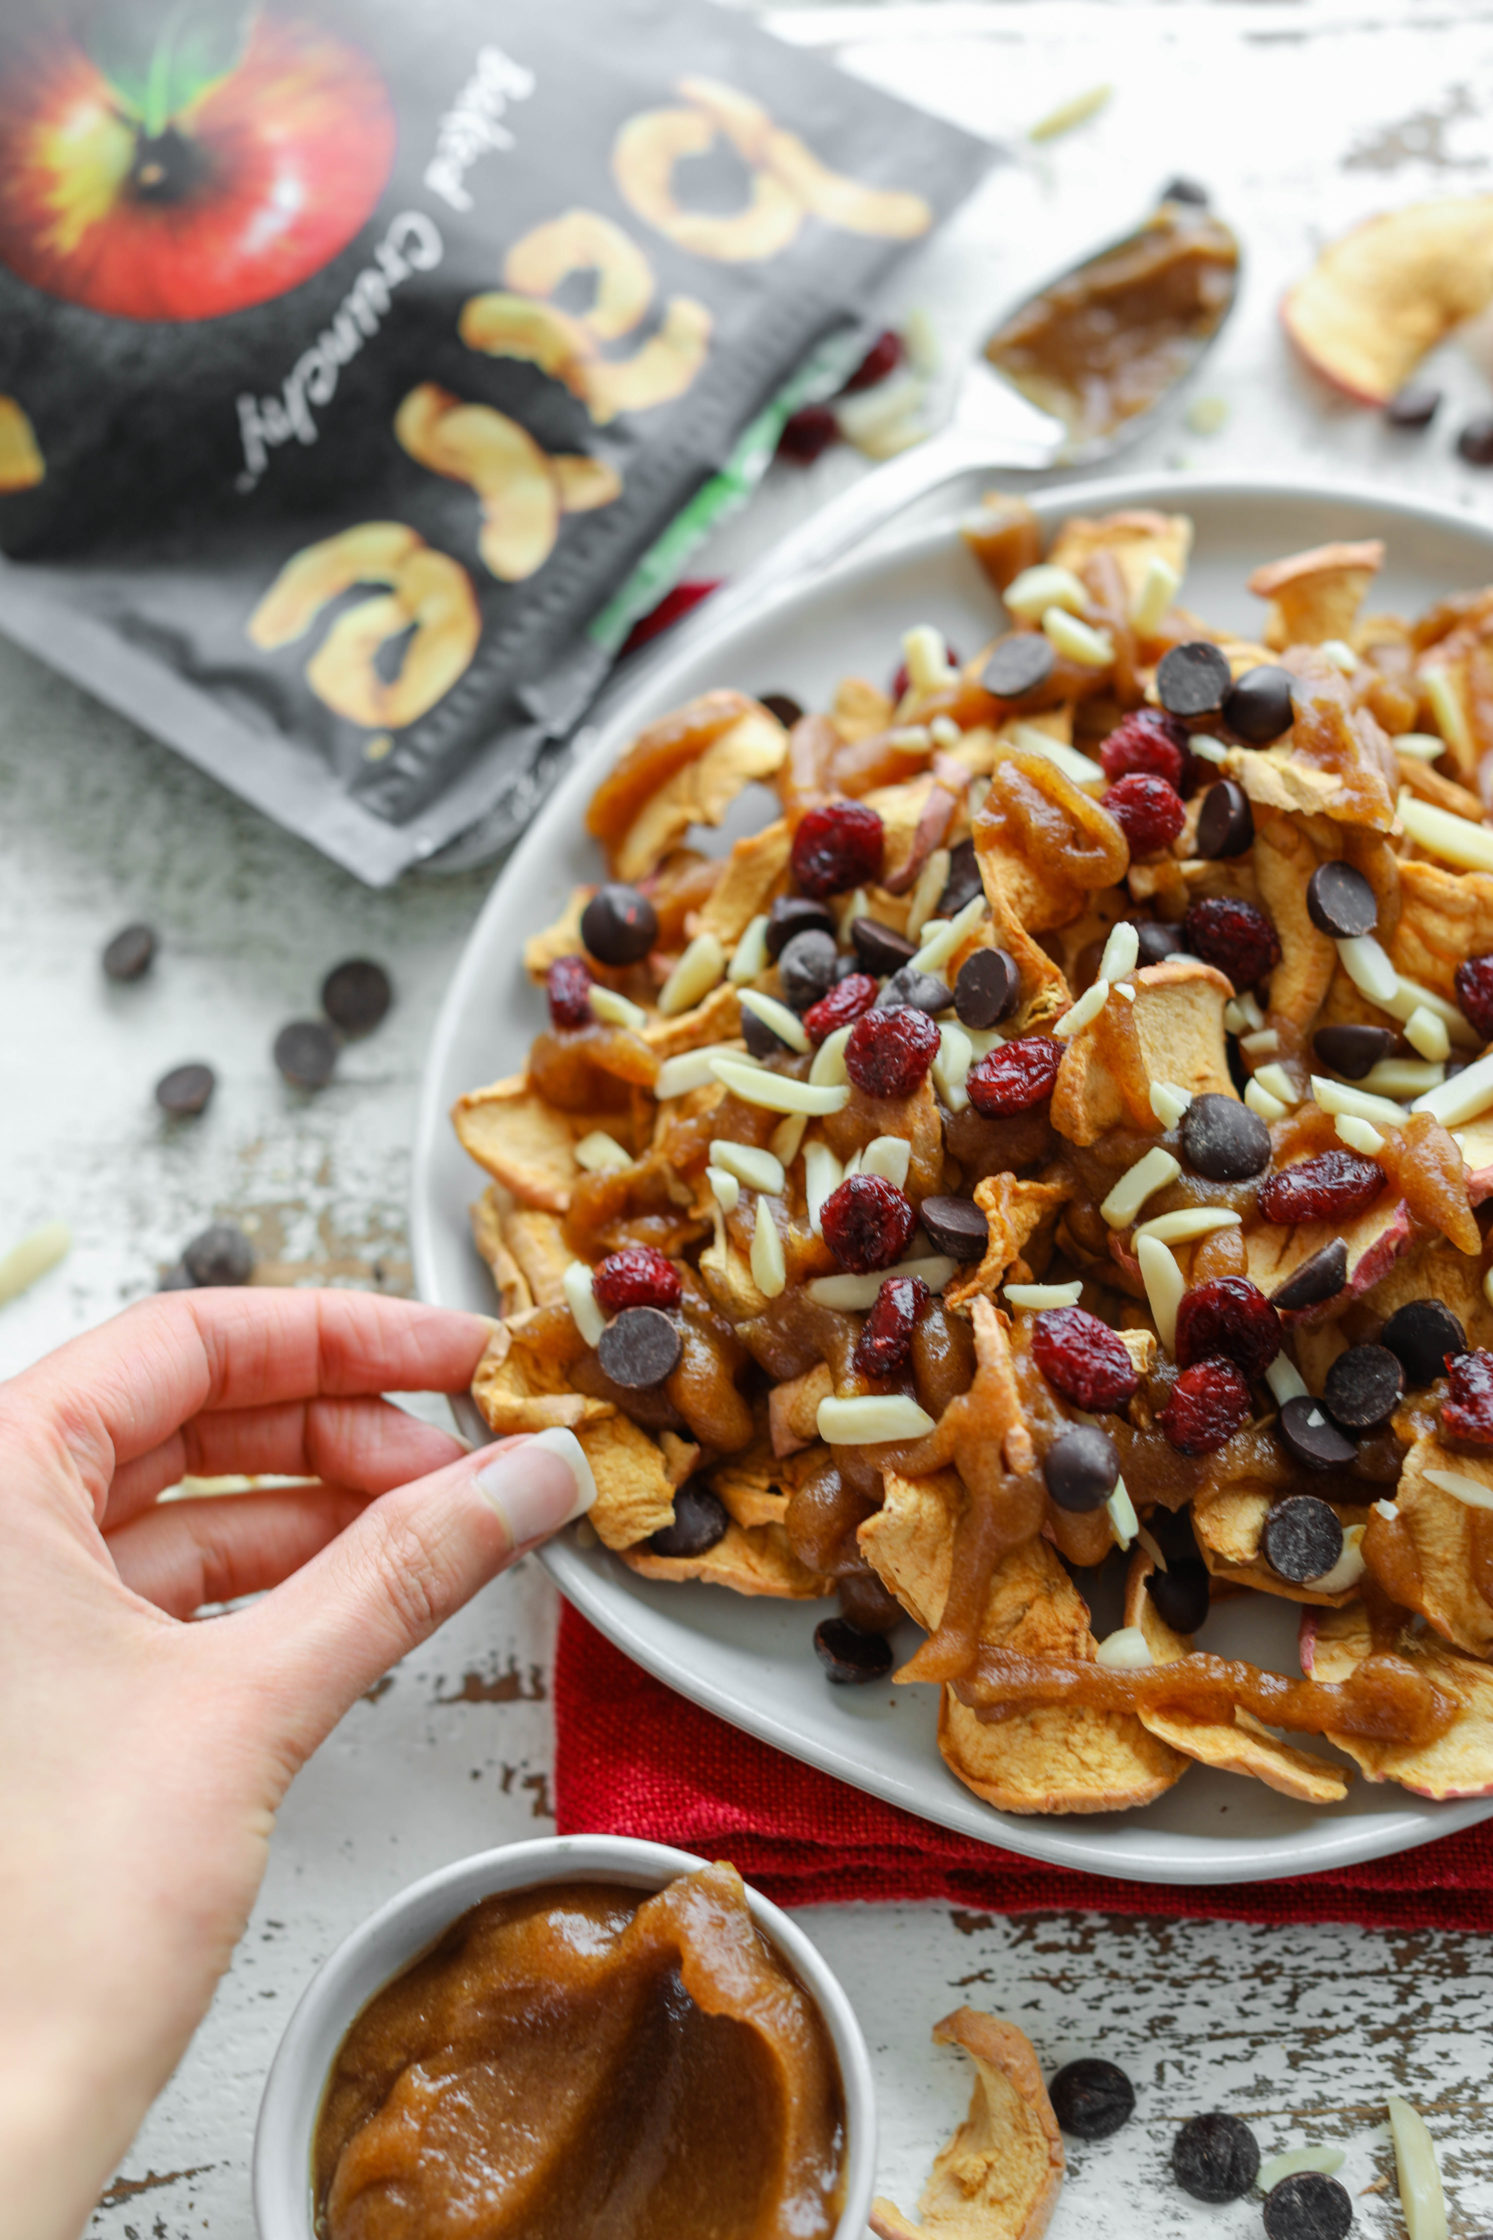 Apple Chip Nachos with Date Caramel by Flora & Vino